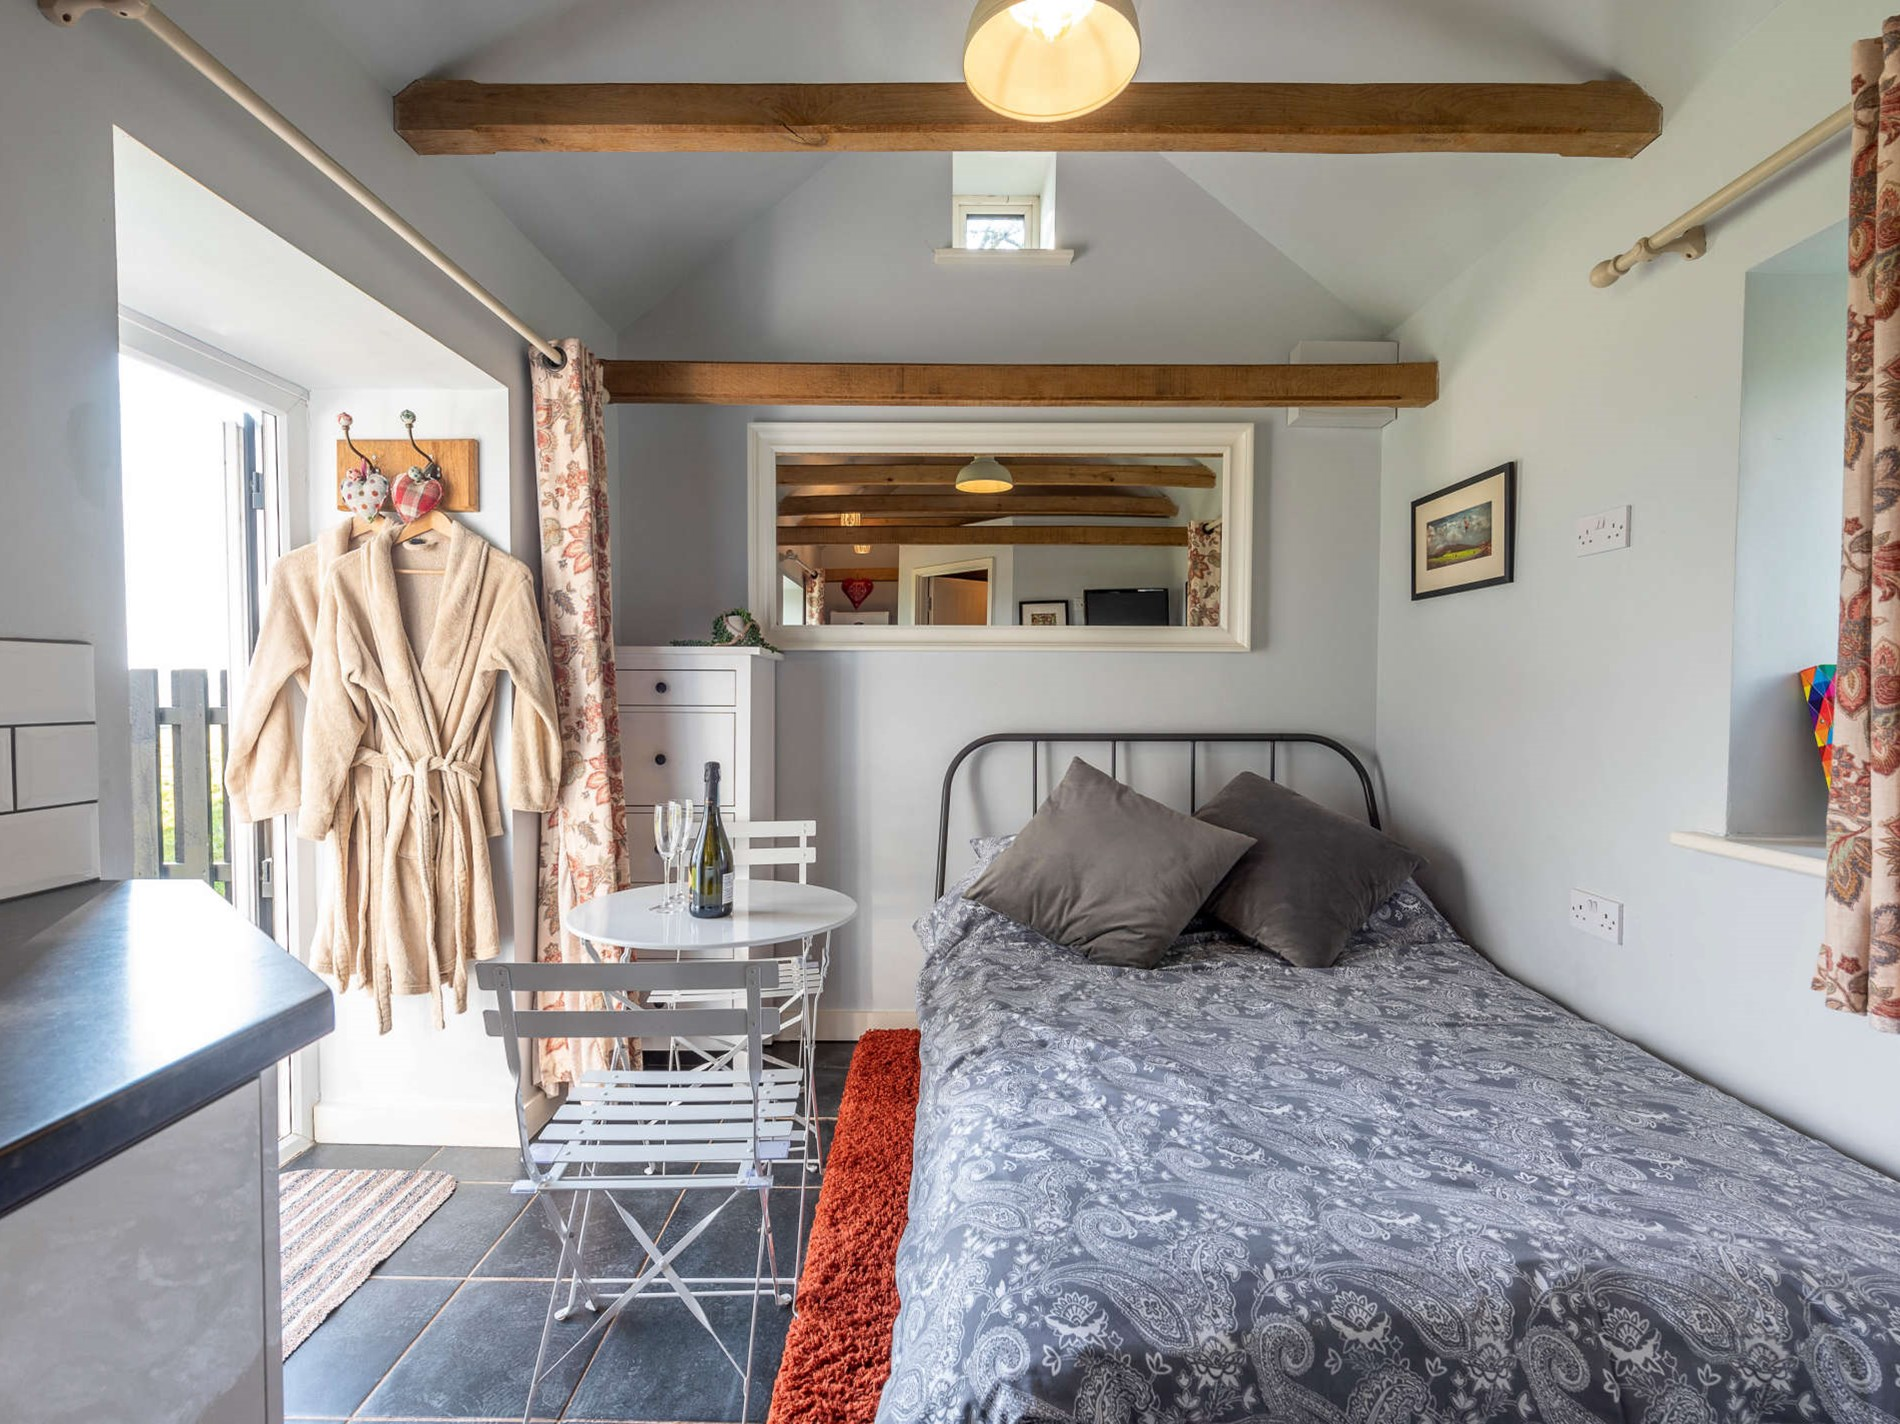 1 Bedroom Barn in Shropshire, Pembrokeshire and the South